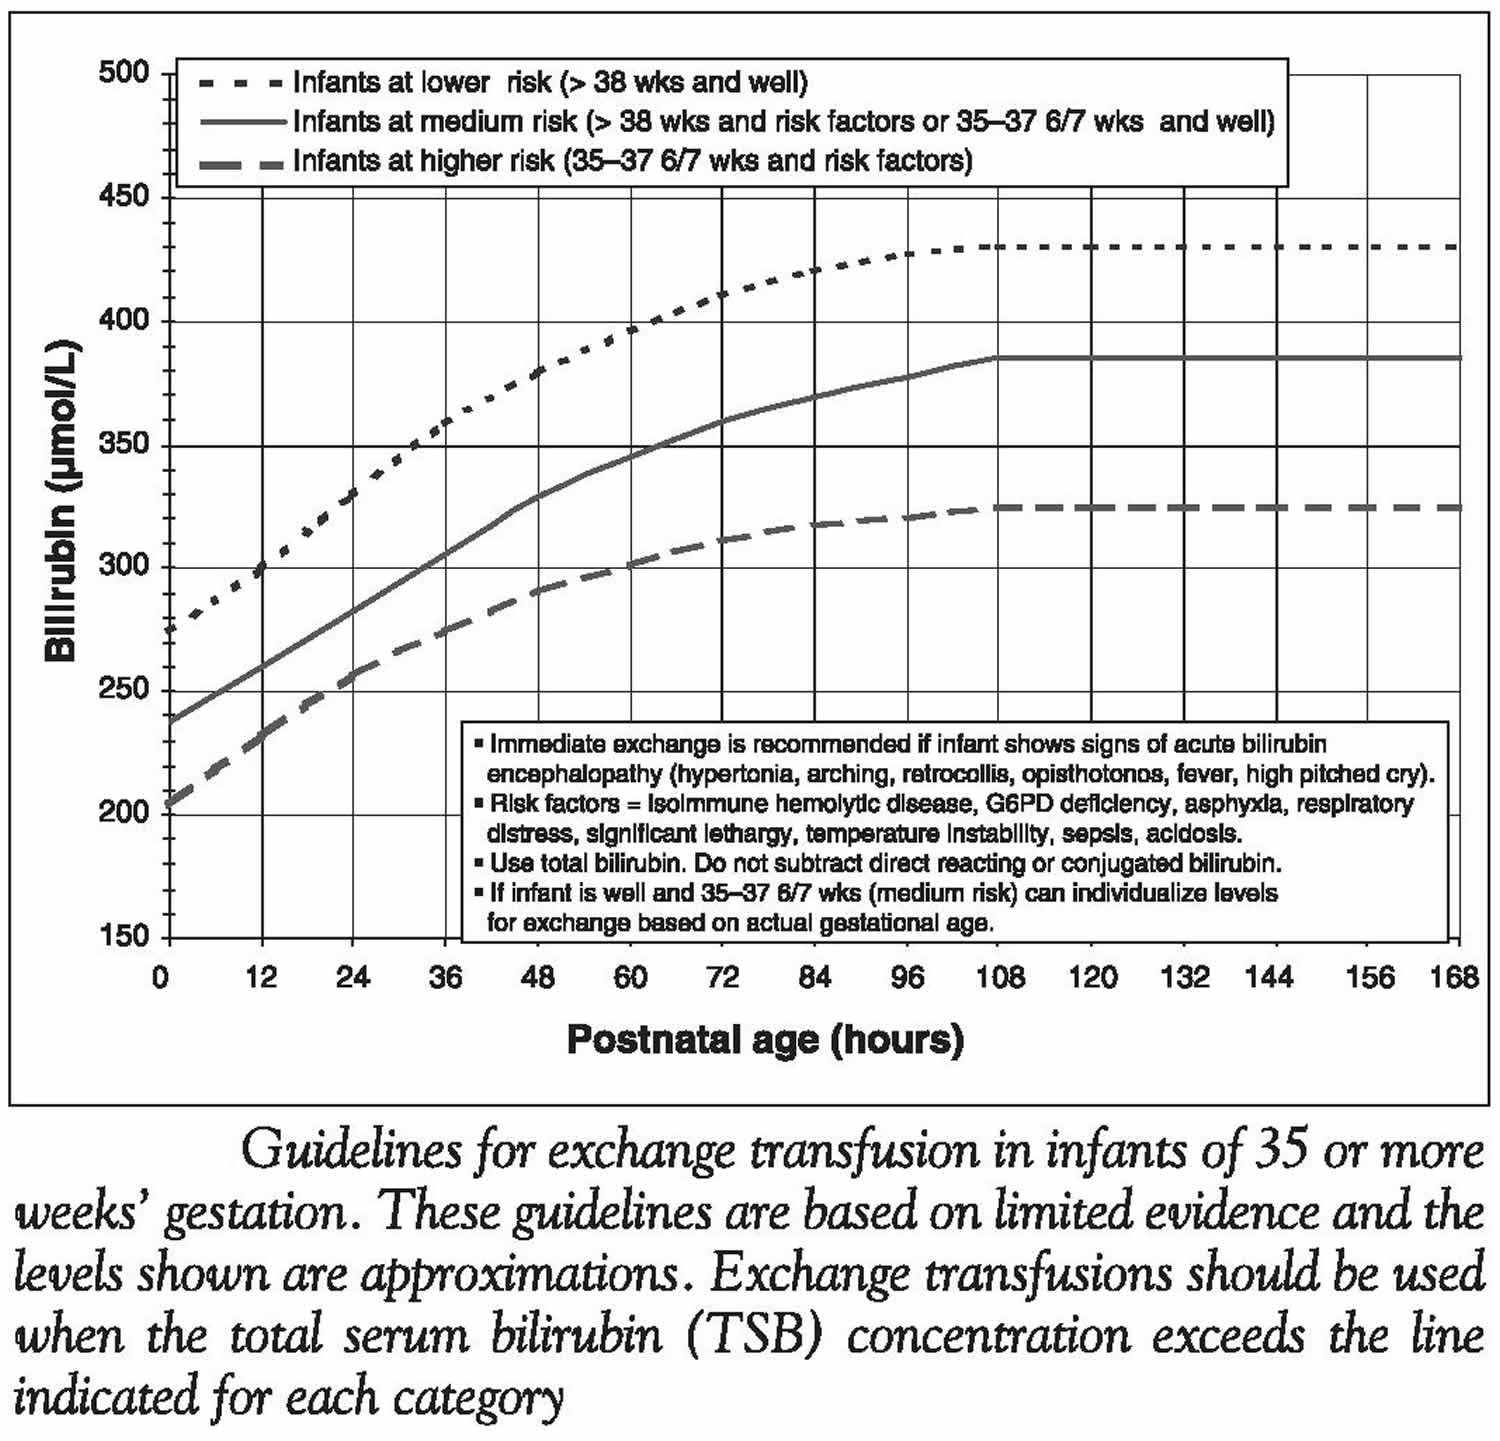 Guidelines for exchange transfusion based on infants age and total serum bilirubin concentration